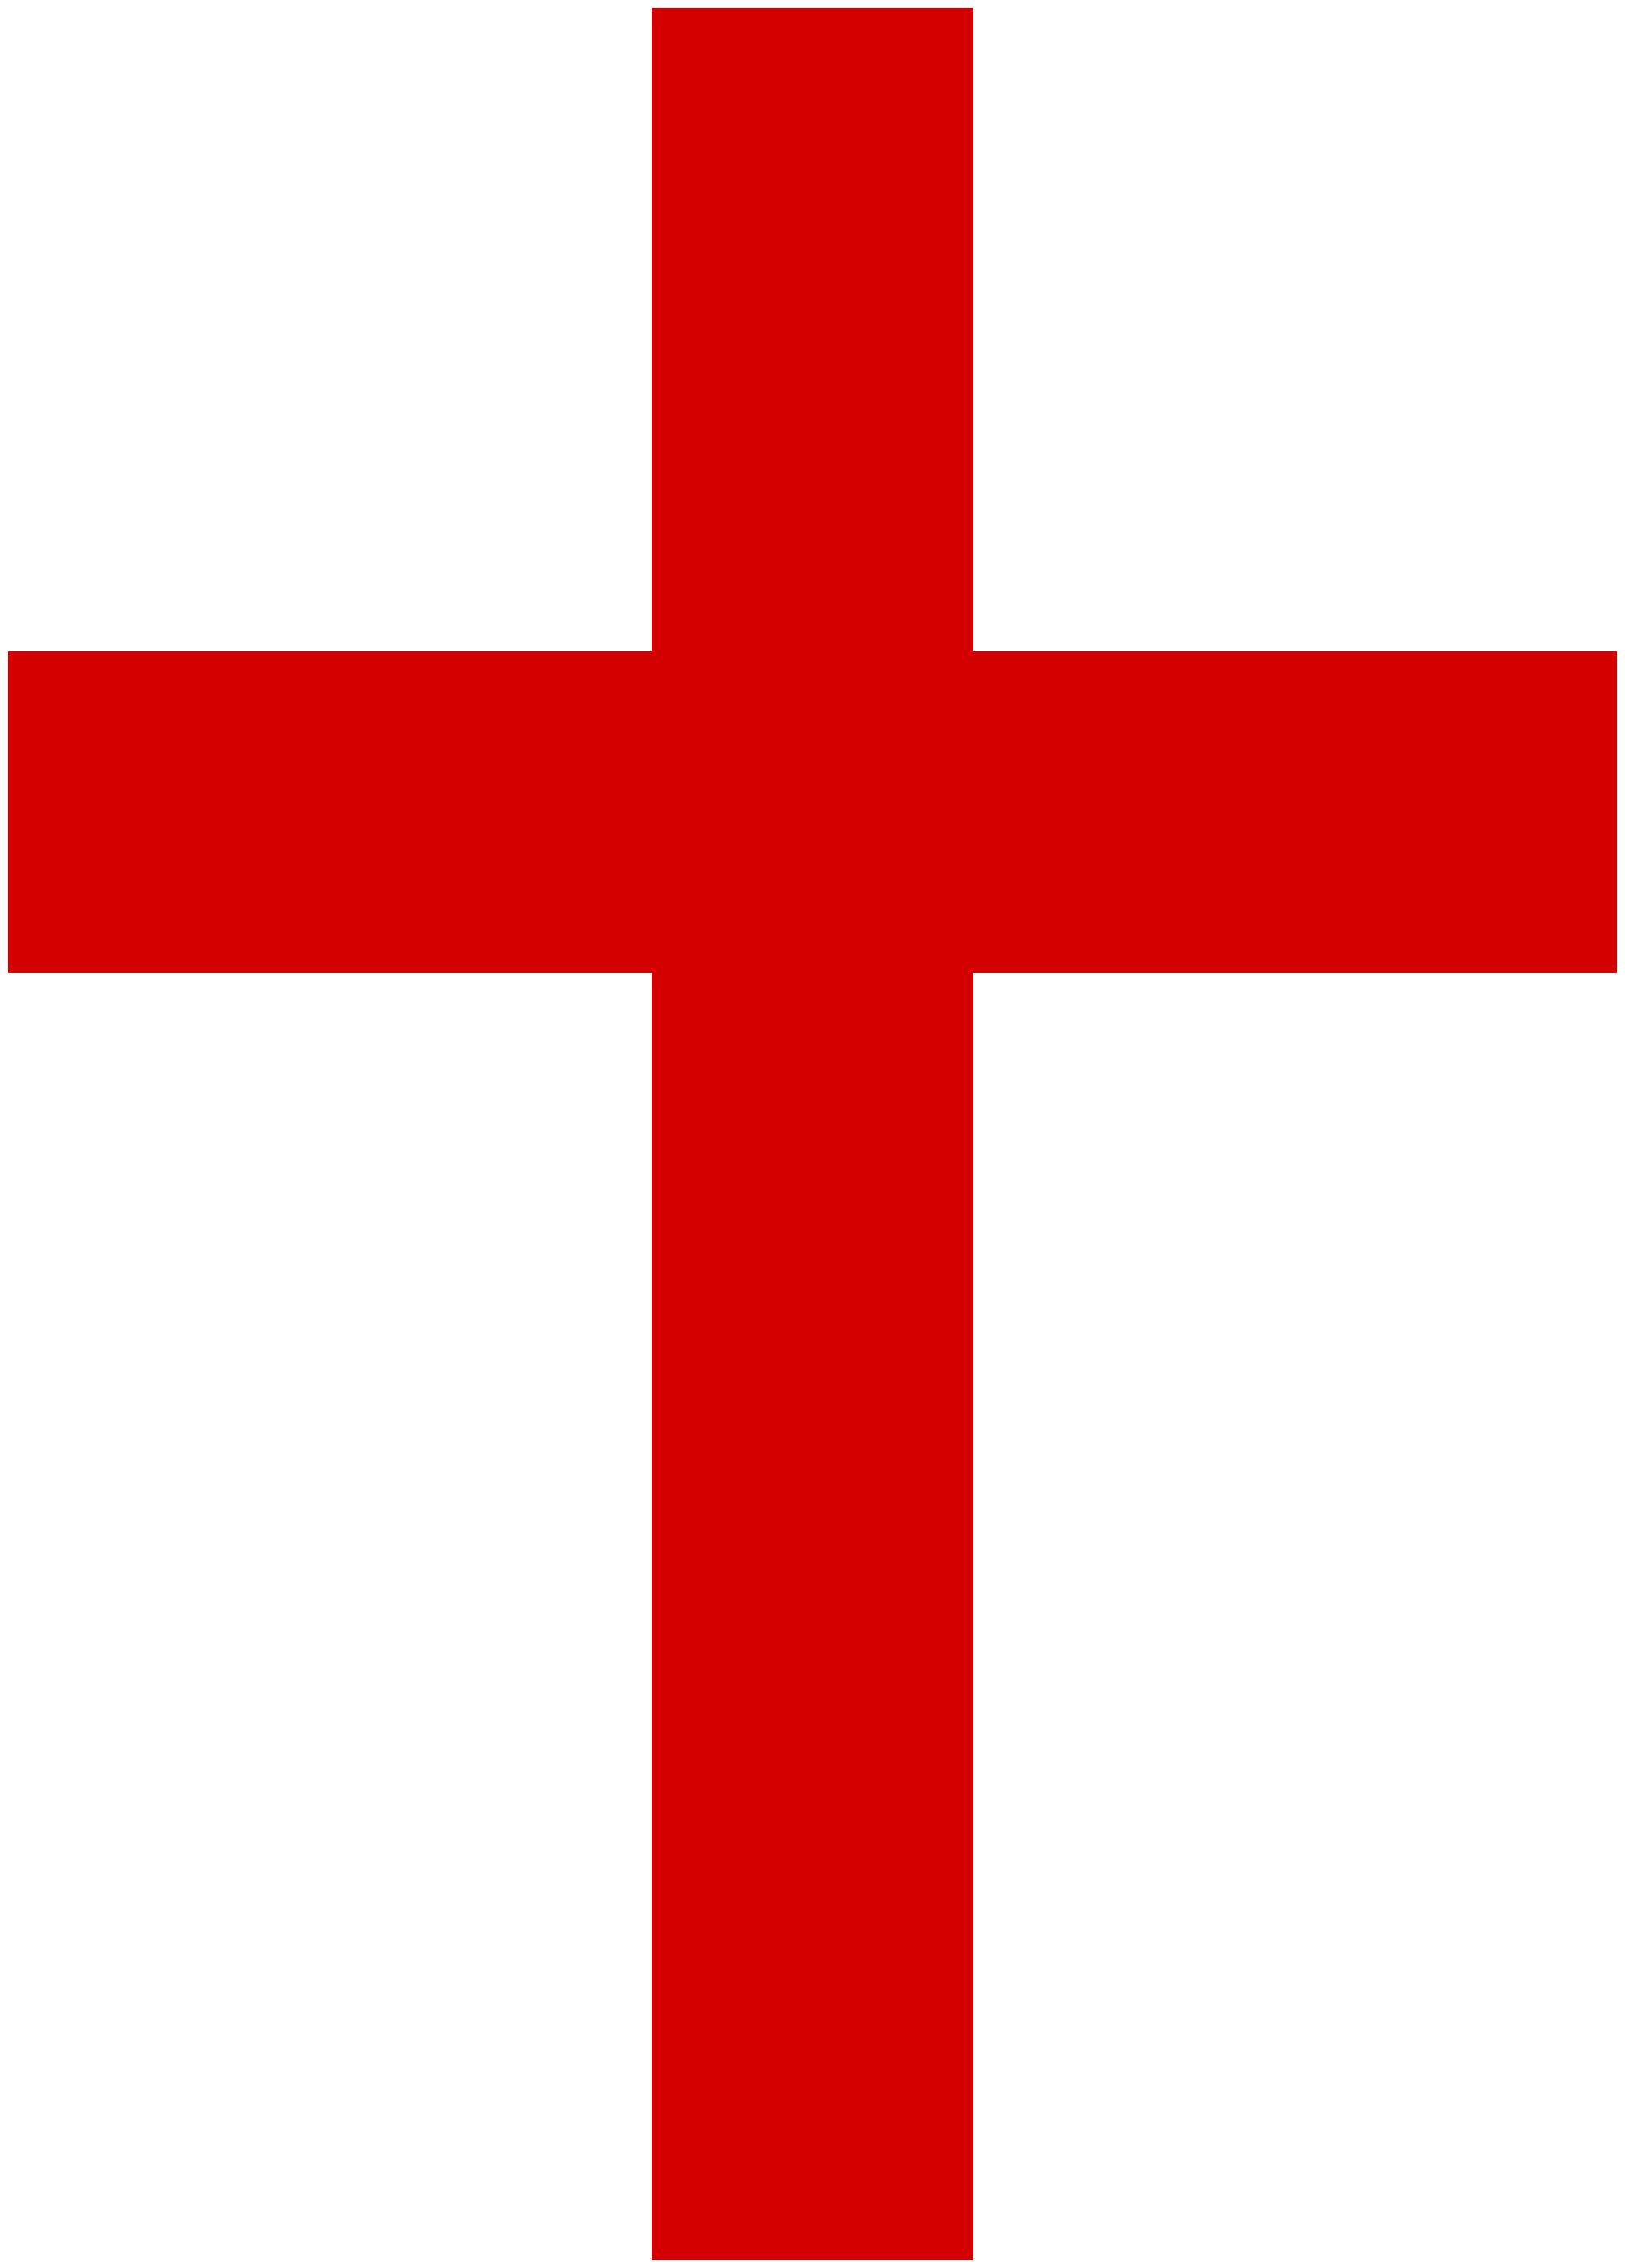 Download Christian Cross Clipart HQ PNG Image | FreePNGImg graphic freeuse library